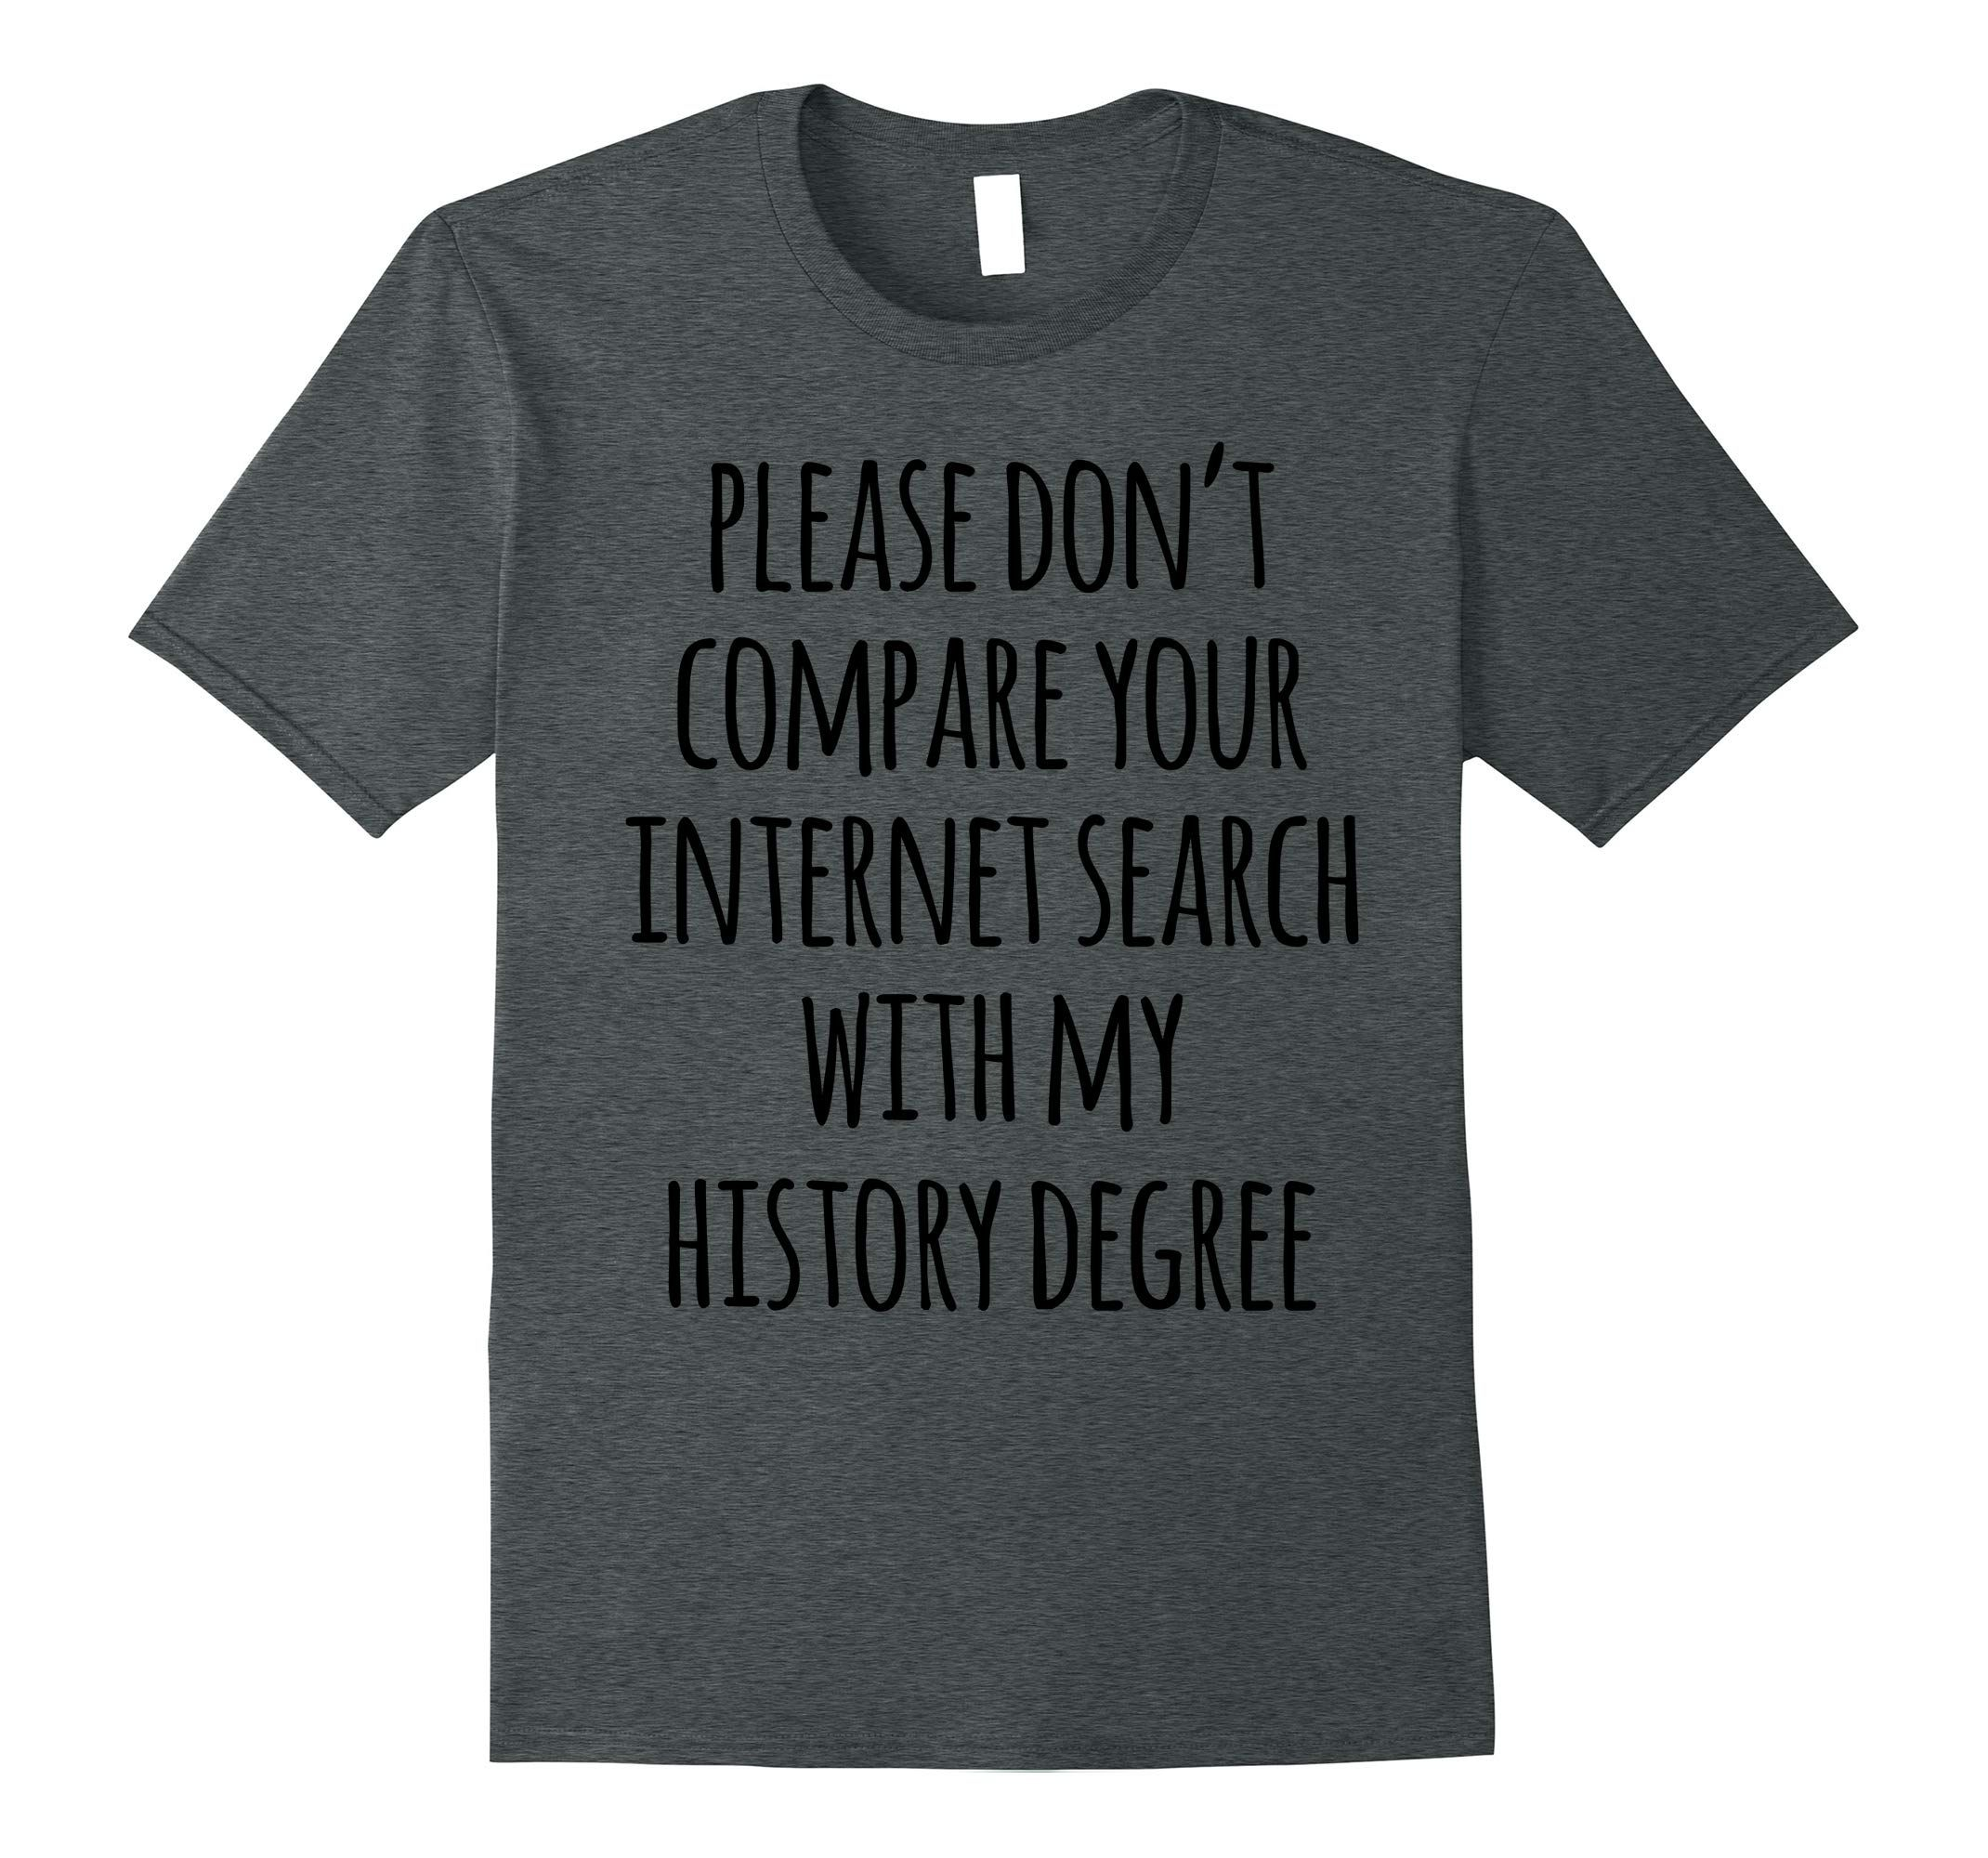 Photo of Compare Internet Search History Degree-Samdetee